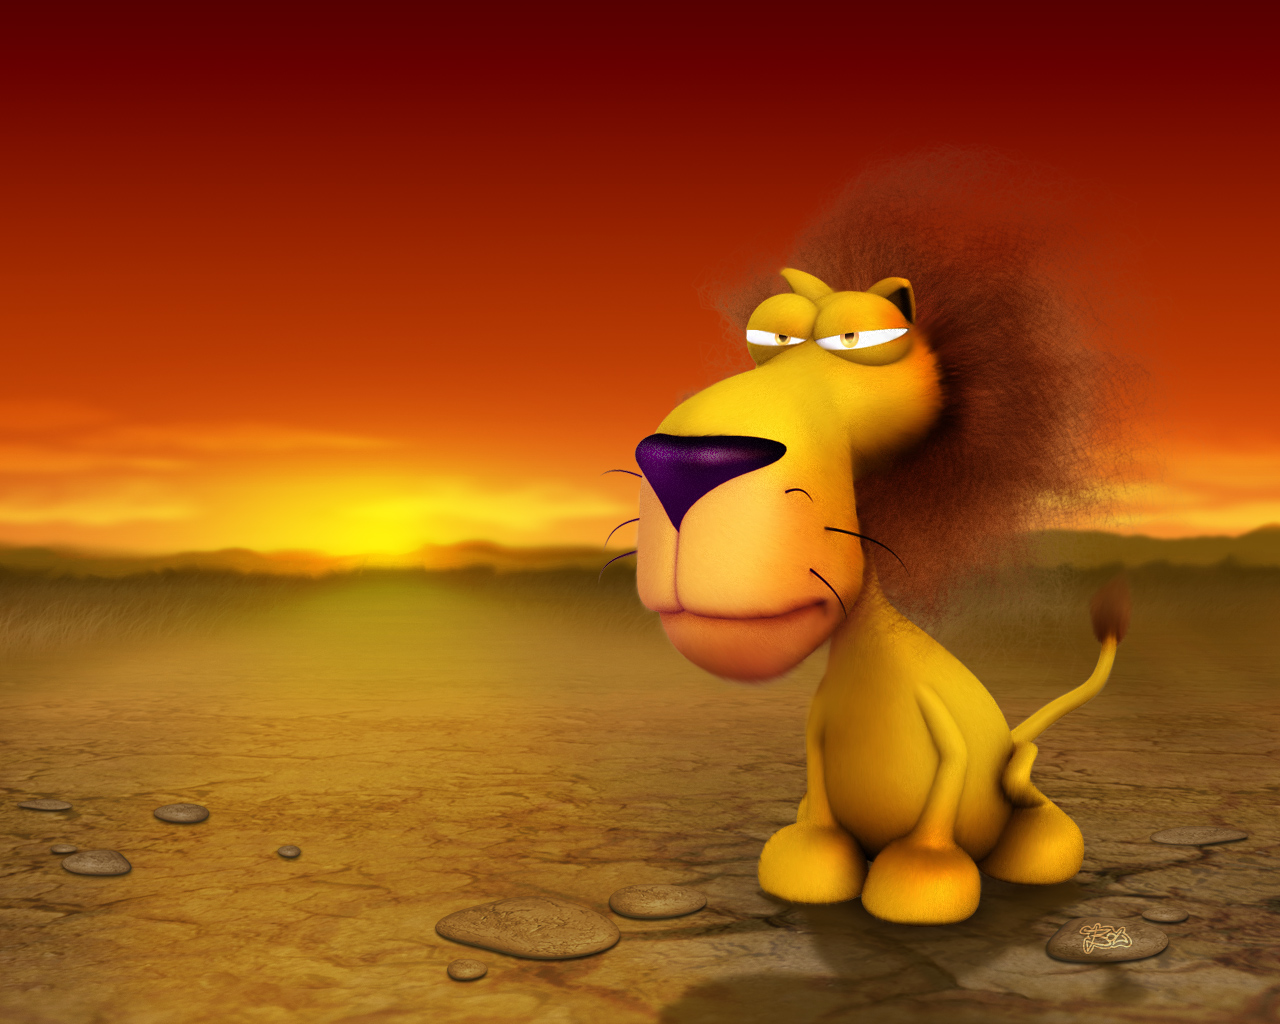 cartoon lion wallpaper-154824